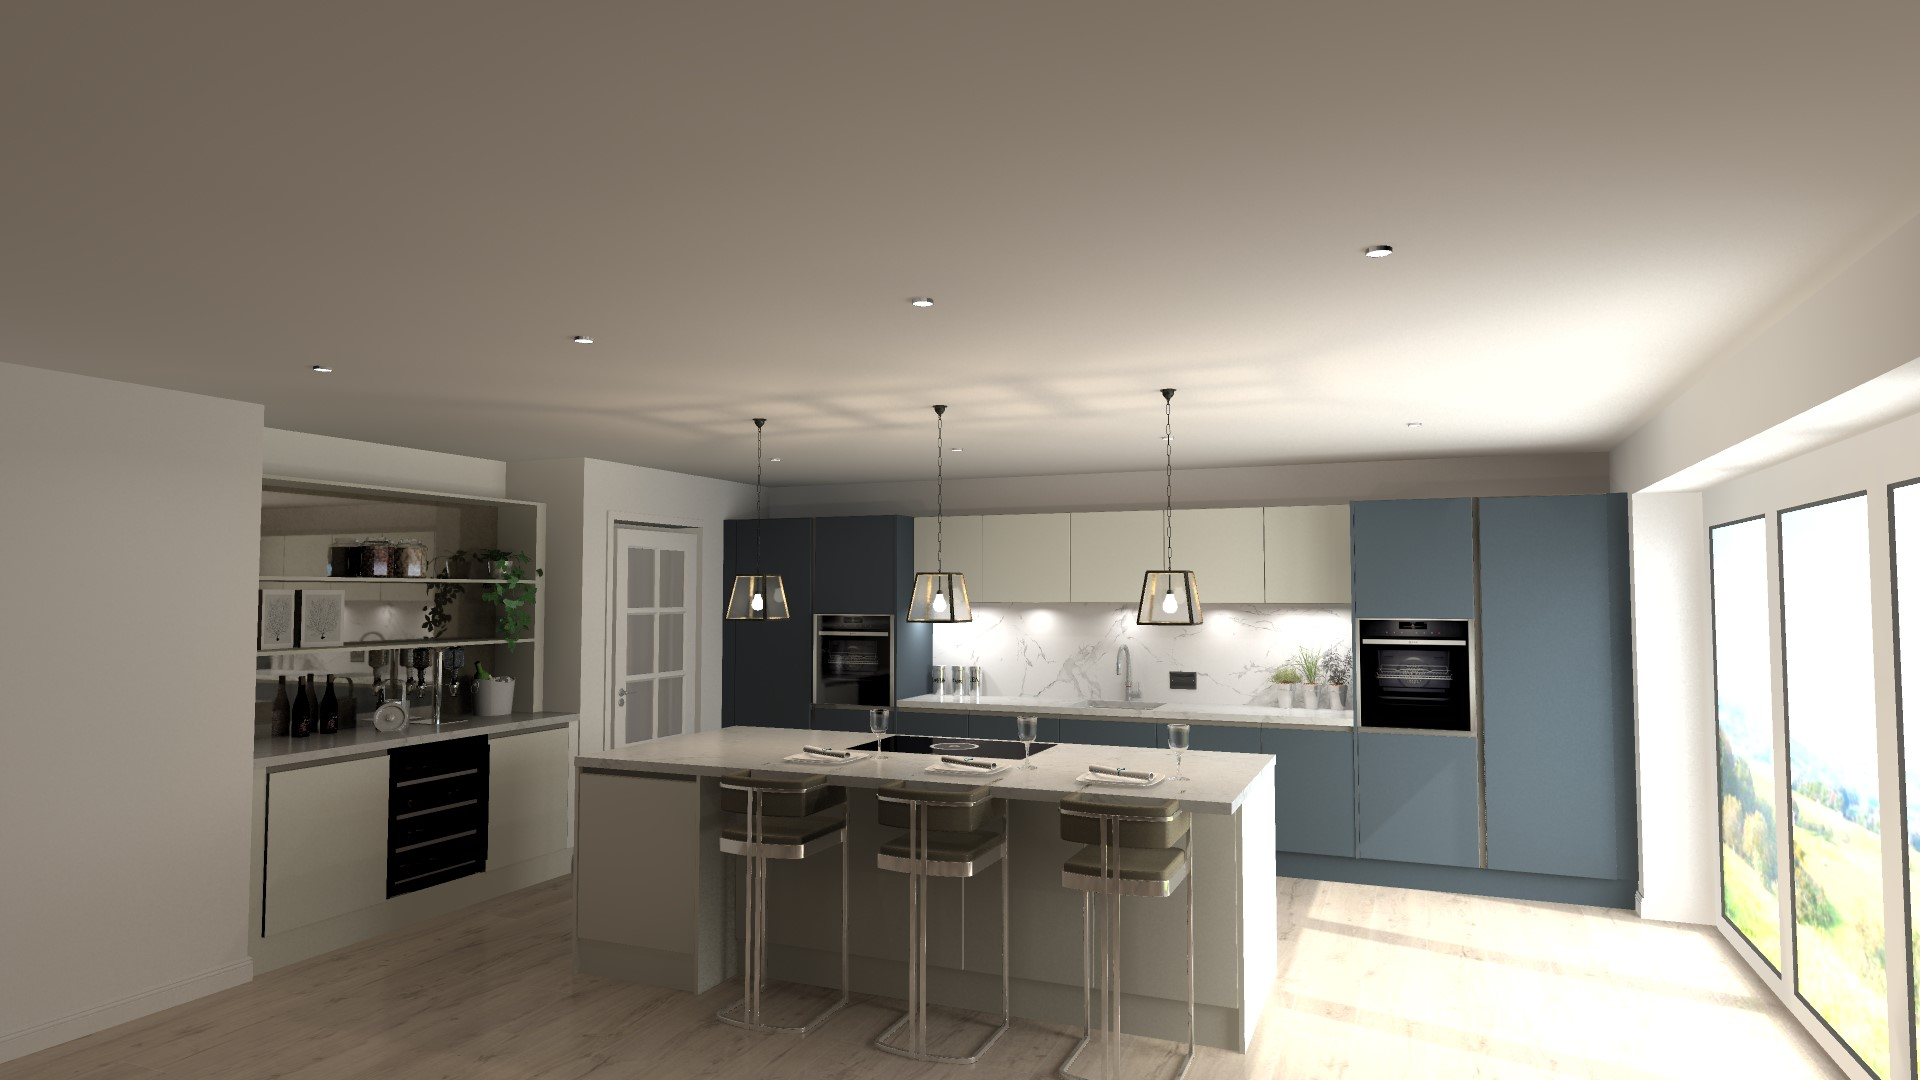 Exquisite, contemporary made-to-measure kitchens at Fold Farm – all about Daval